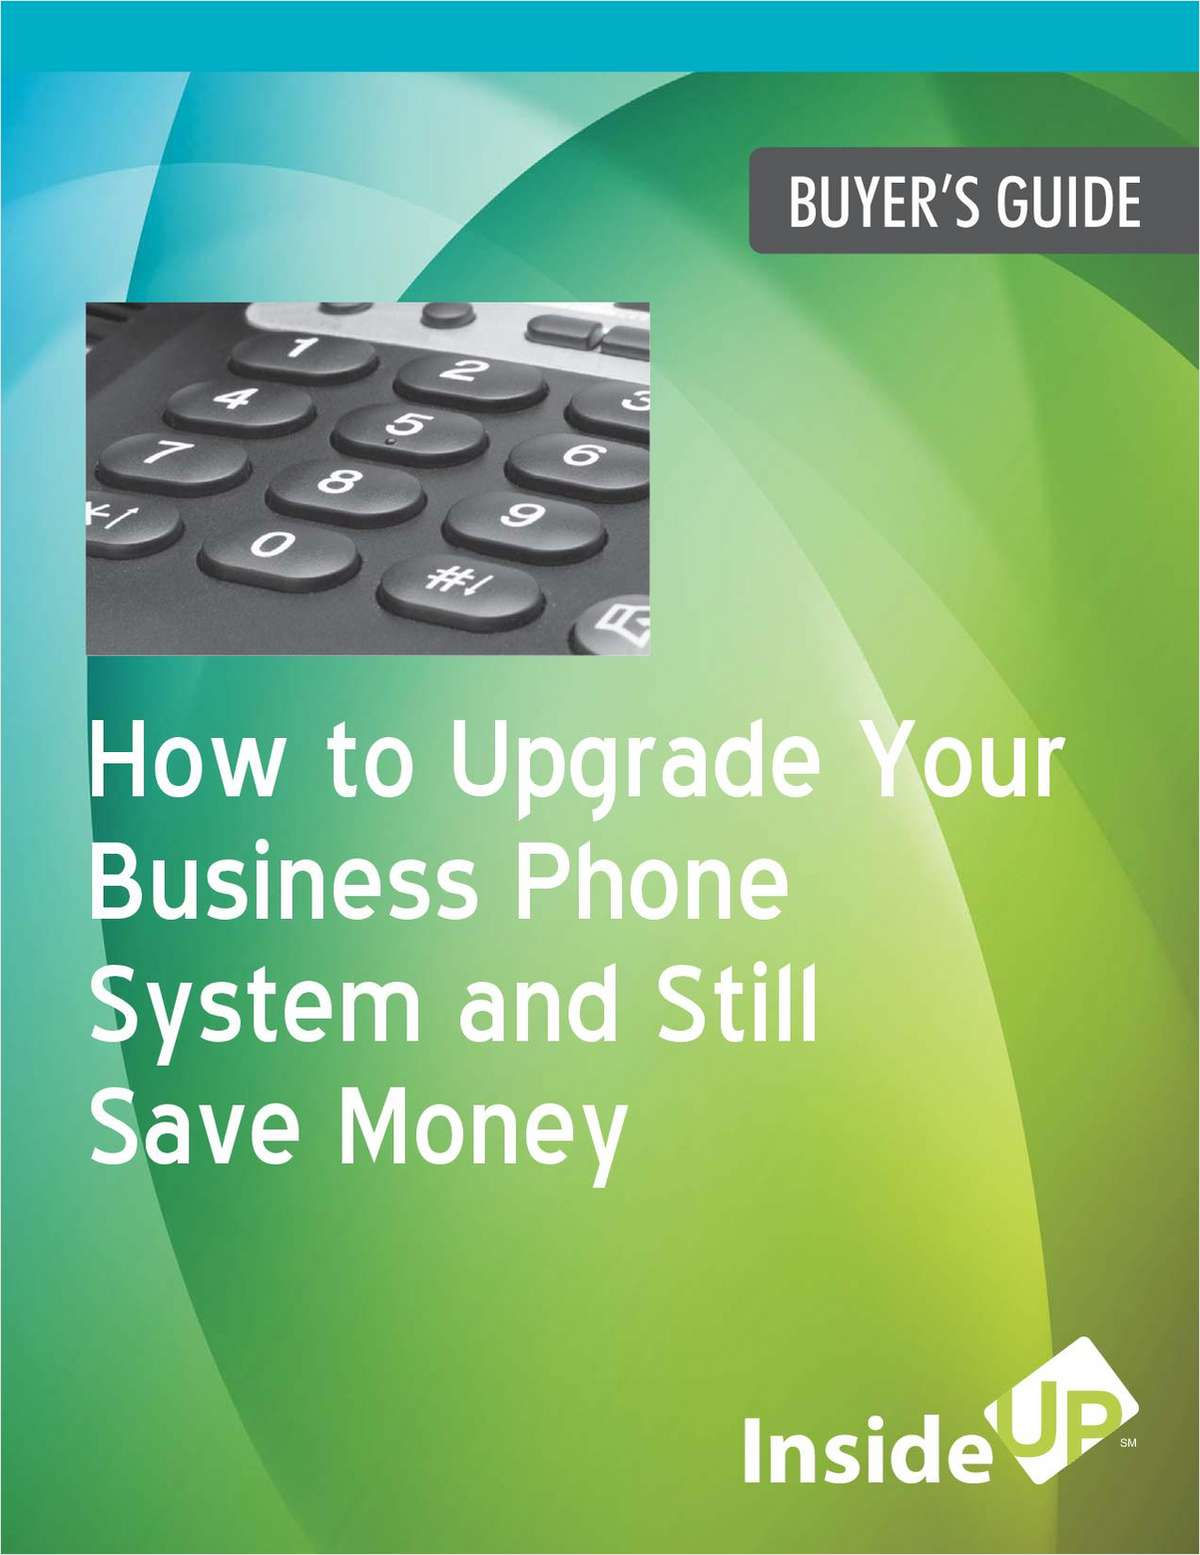 How to Upgrade Your Business Phone System and Still Save Money